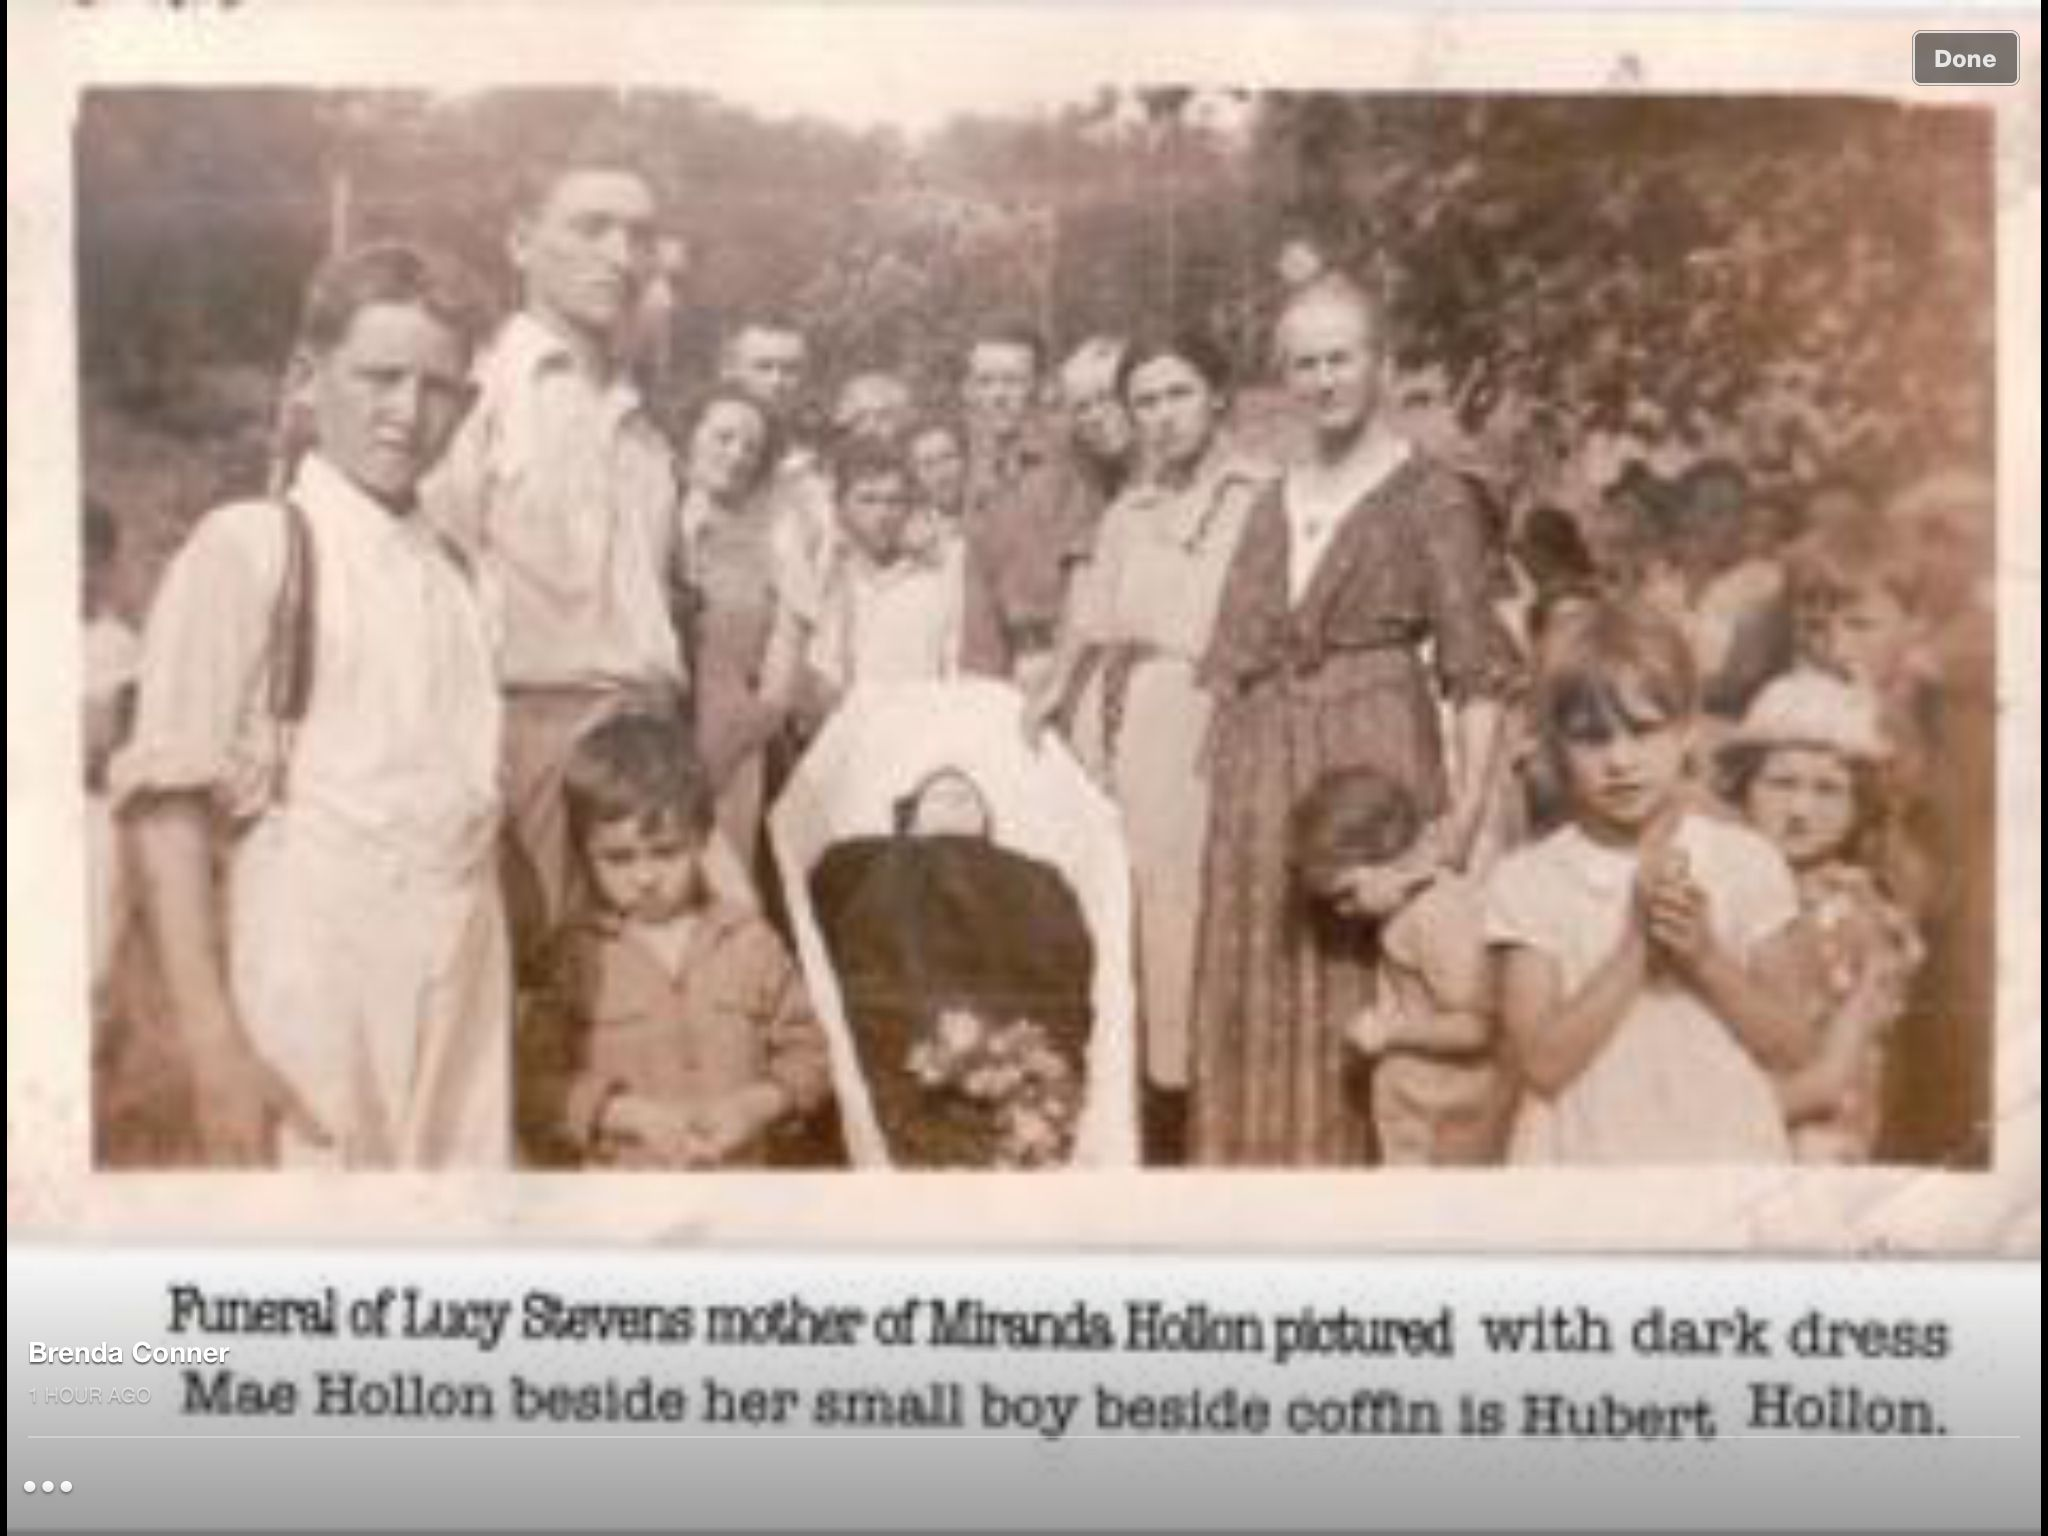 1938 jackson, Ky My great, great grandmother carried up a